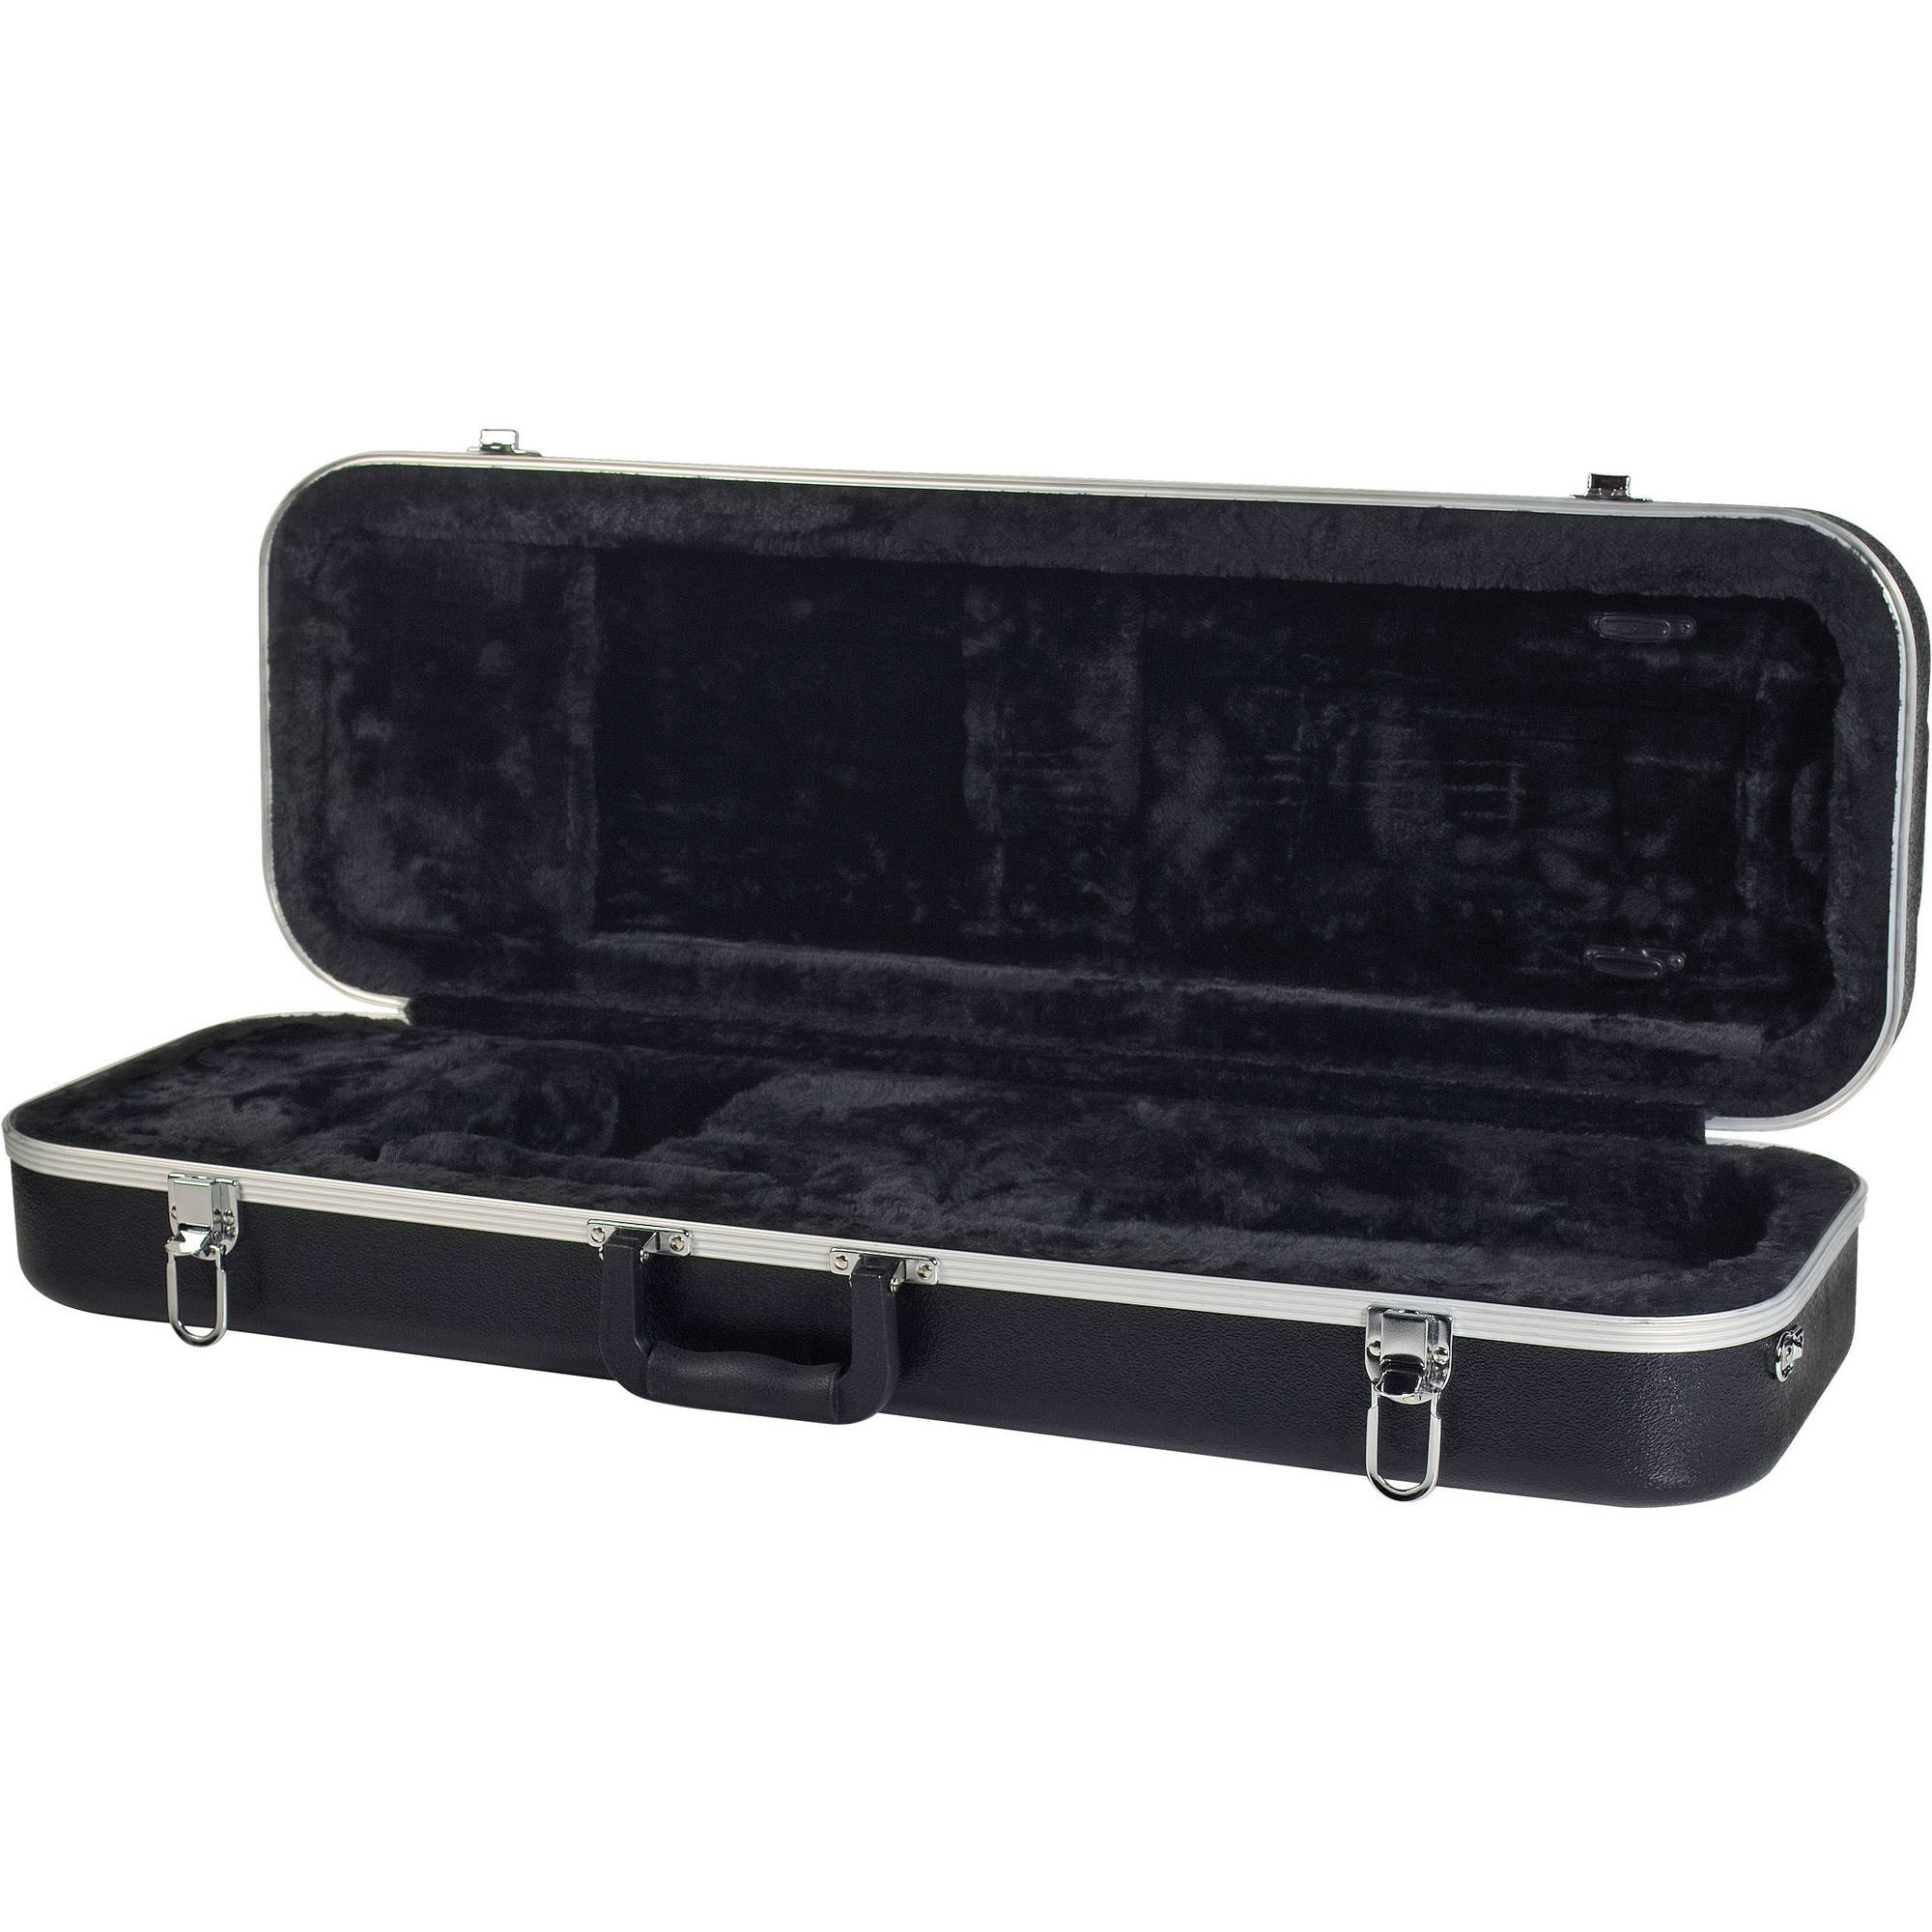 Golden Gate CP-3910 Violin Case, Oblong, 4 4 Size by